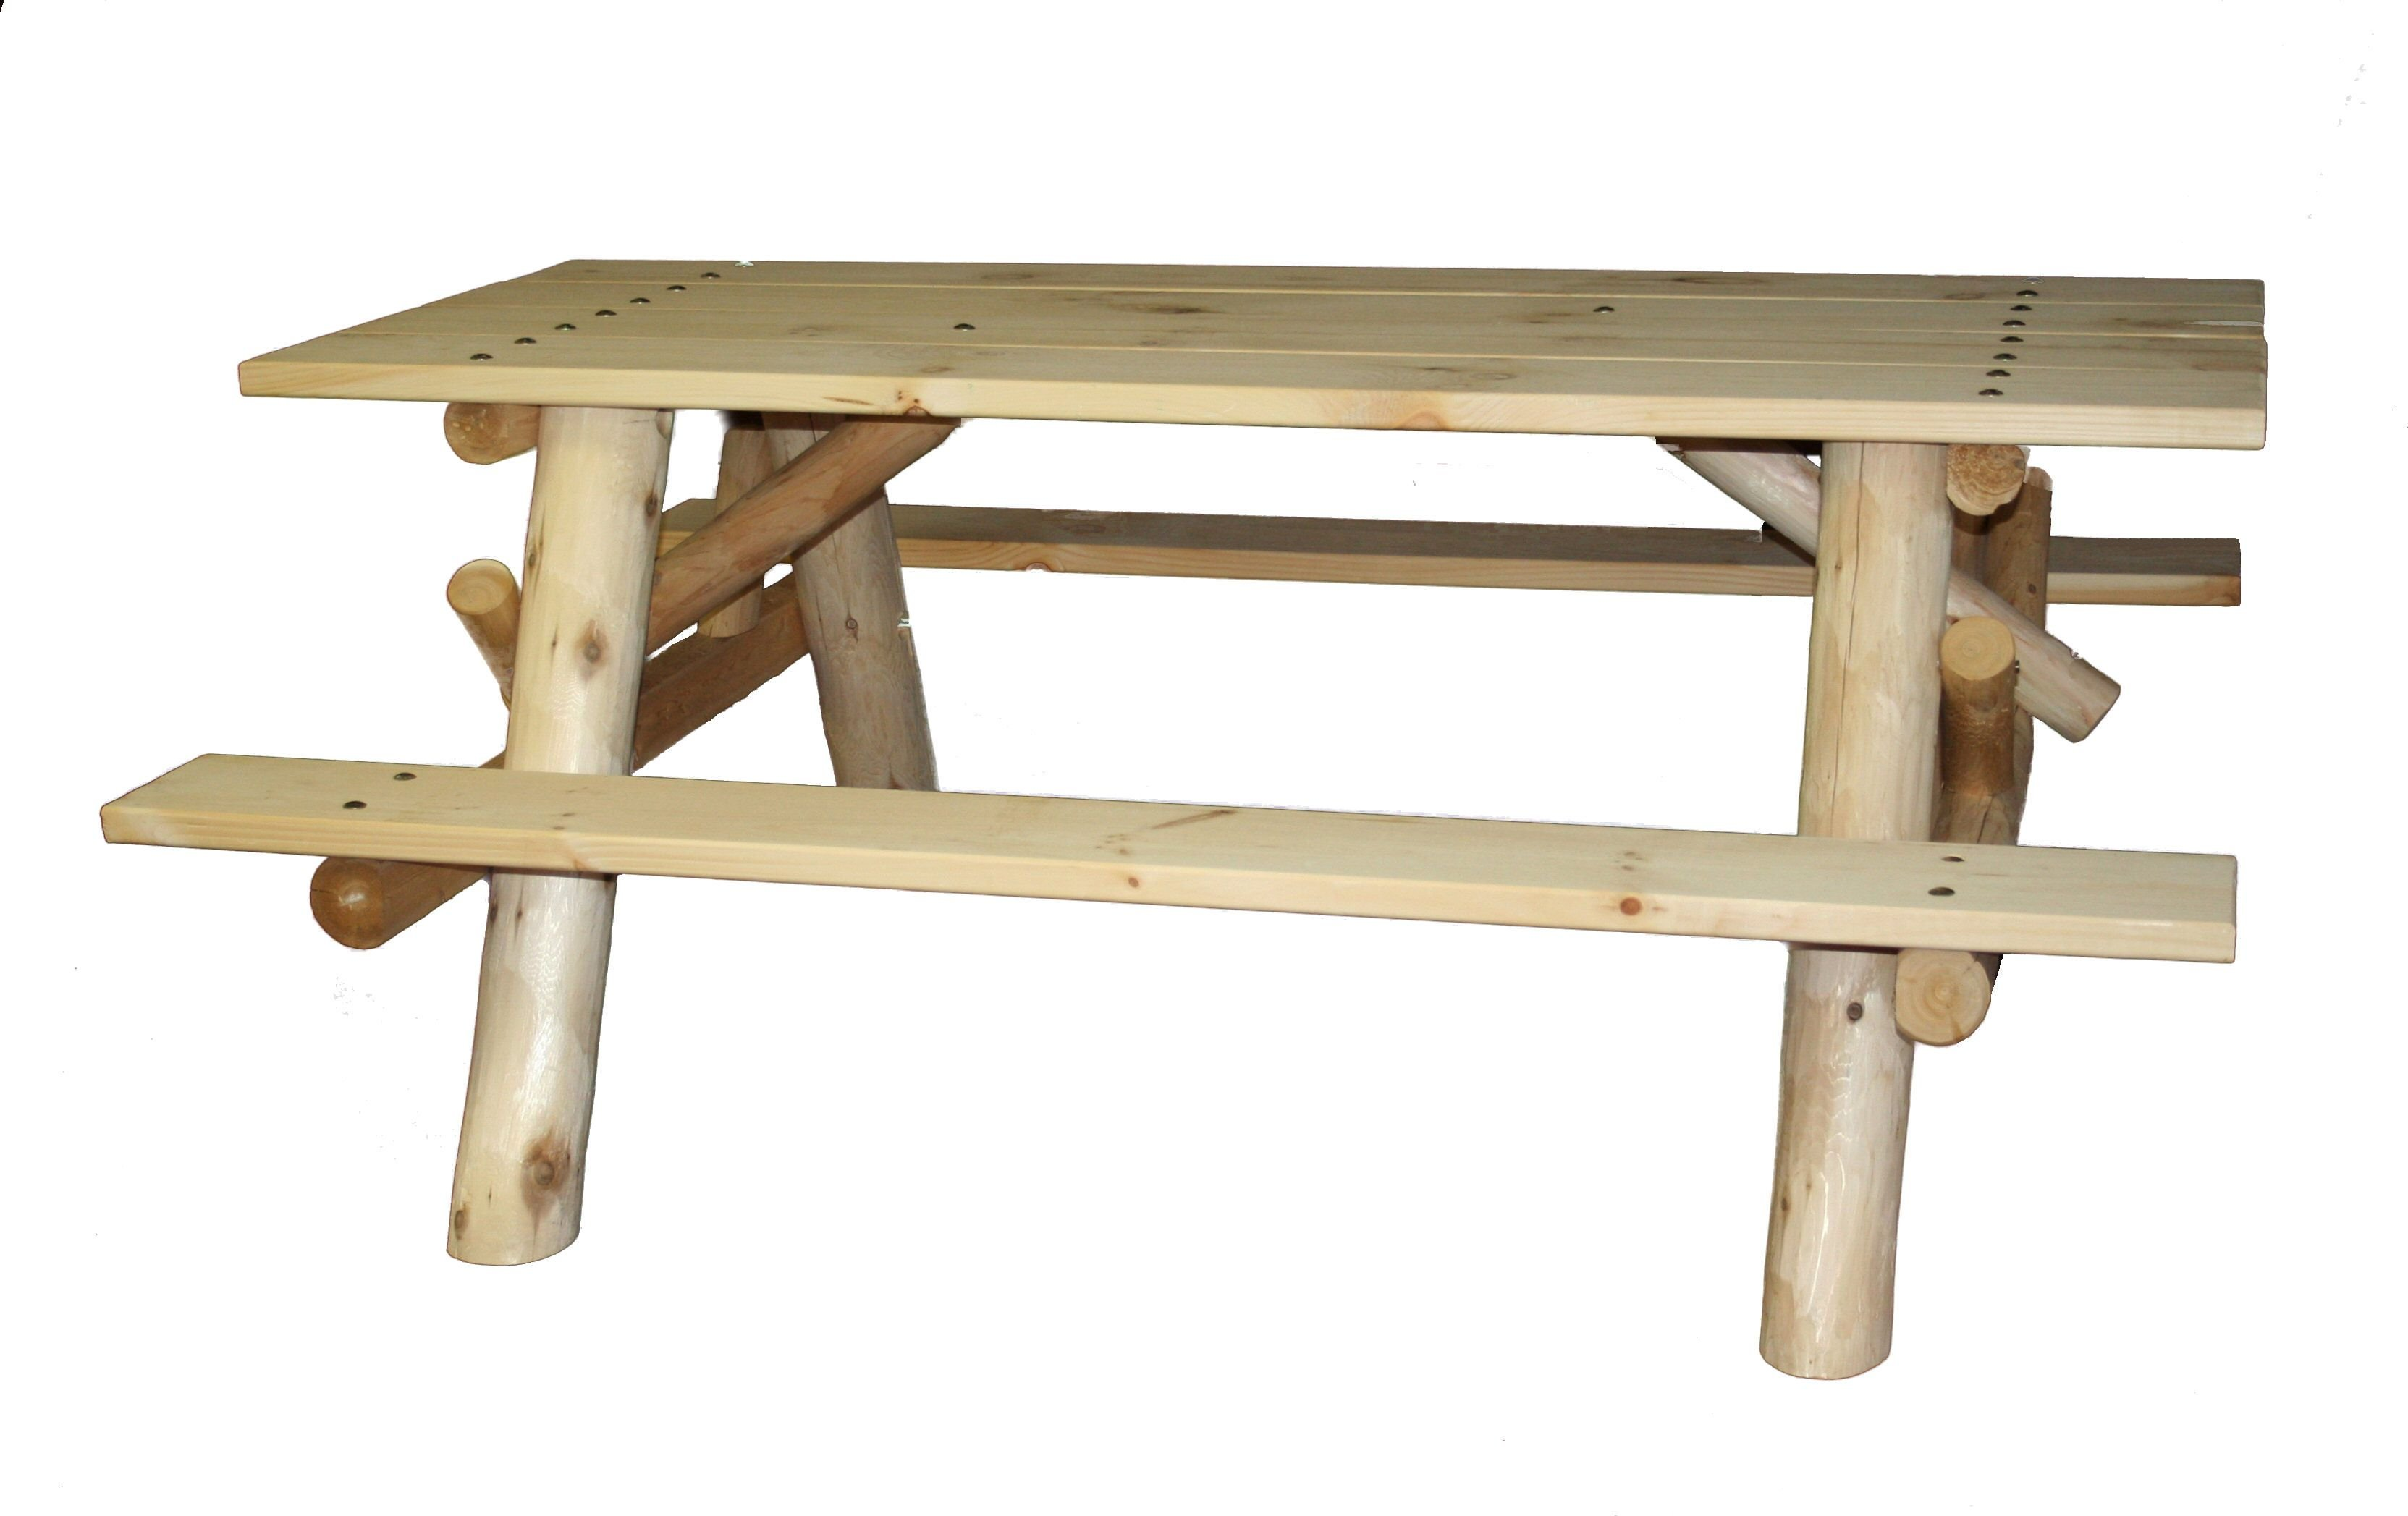 Stupendous 6 Log Picnic Table W Attached Benches Ibusinesslaw Wood Chair Design Ideas Ibusinesslaworg